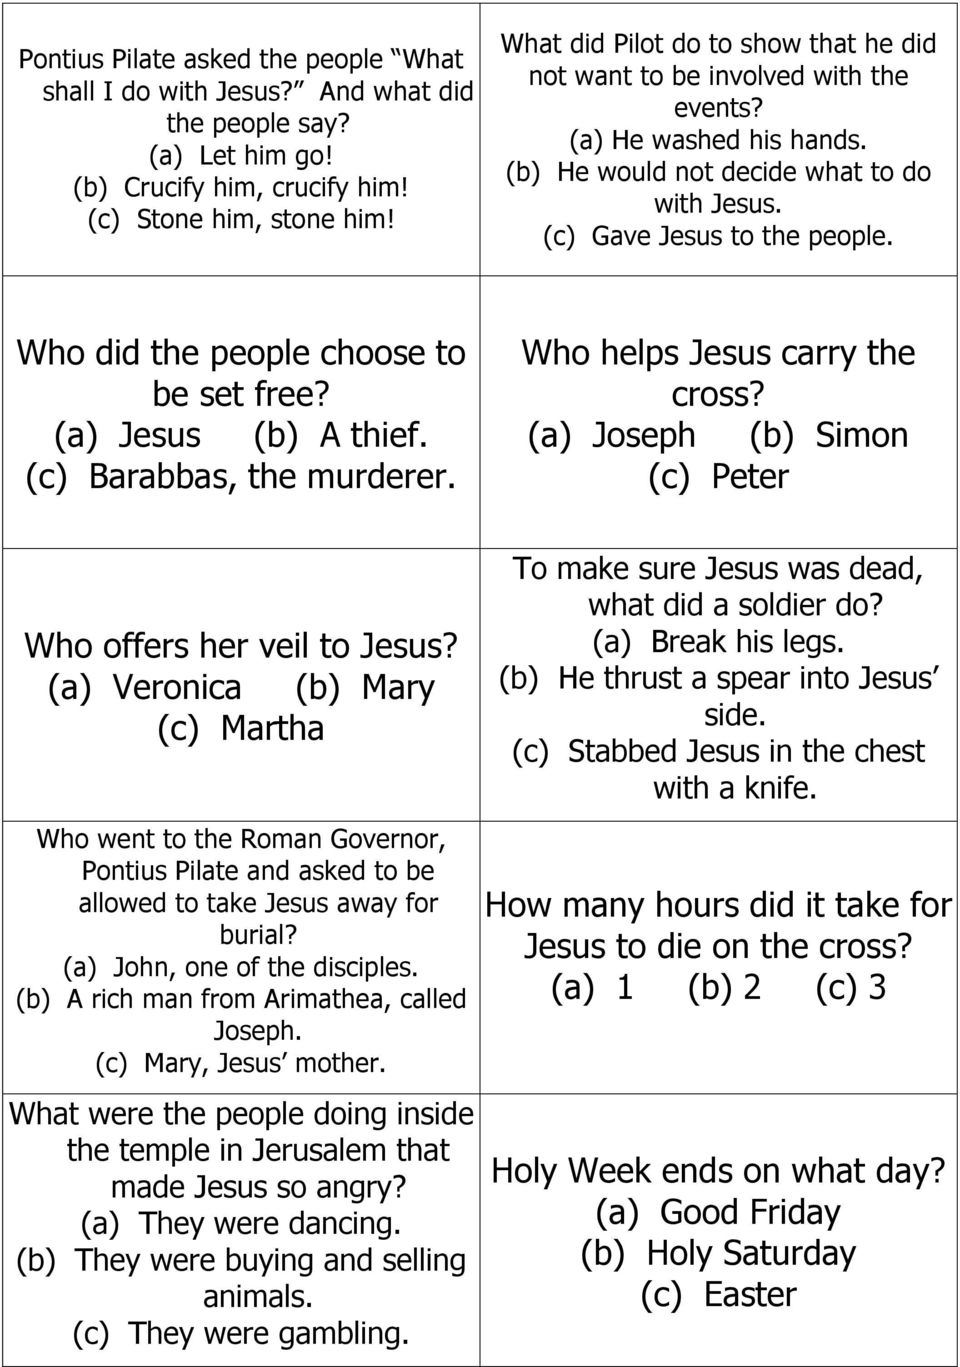 Who did the people choose to be set free? (a) Jesus (b) A thief. (c) Barabbas, the murderer. Who helps Jesus carry the cross? (a) Joseph (b) Simon (c) Peter Who offers her veil to Jesus?